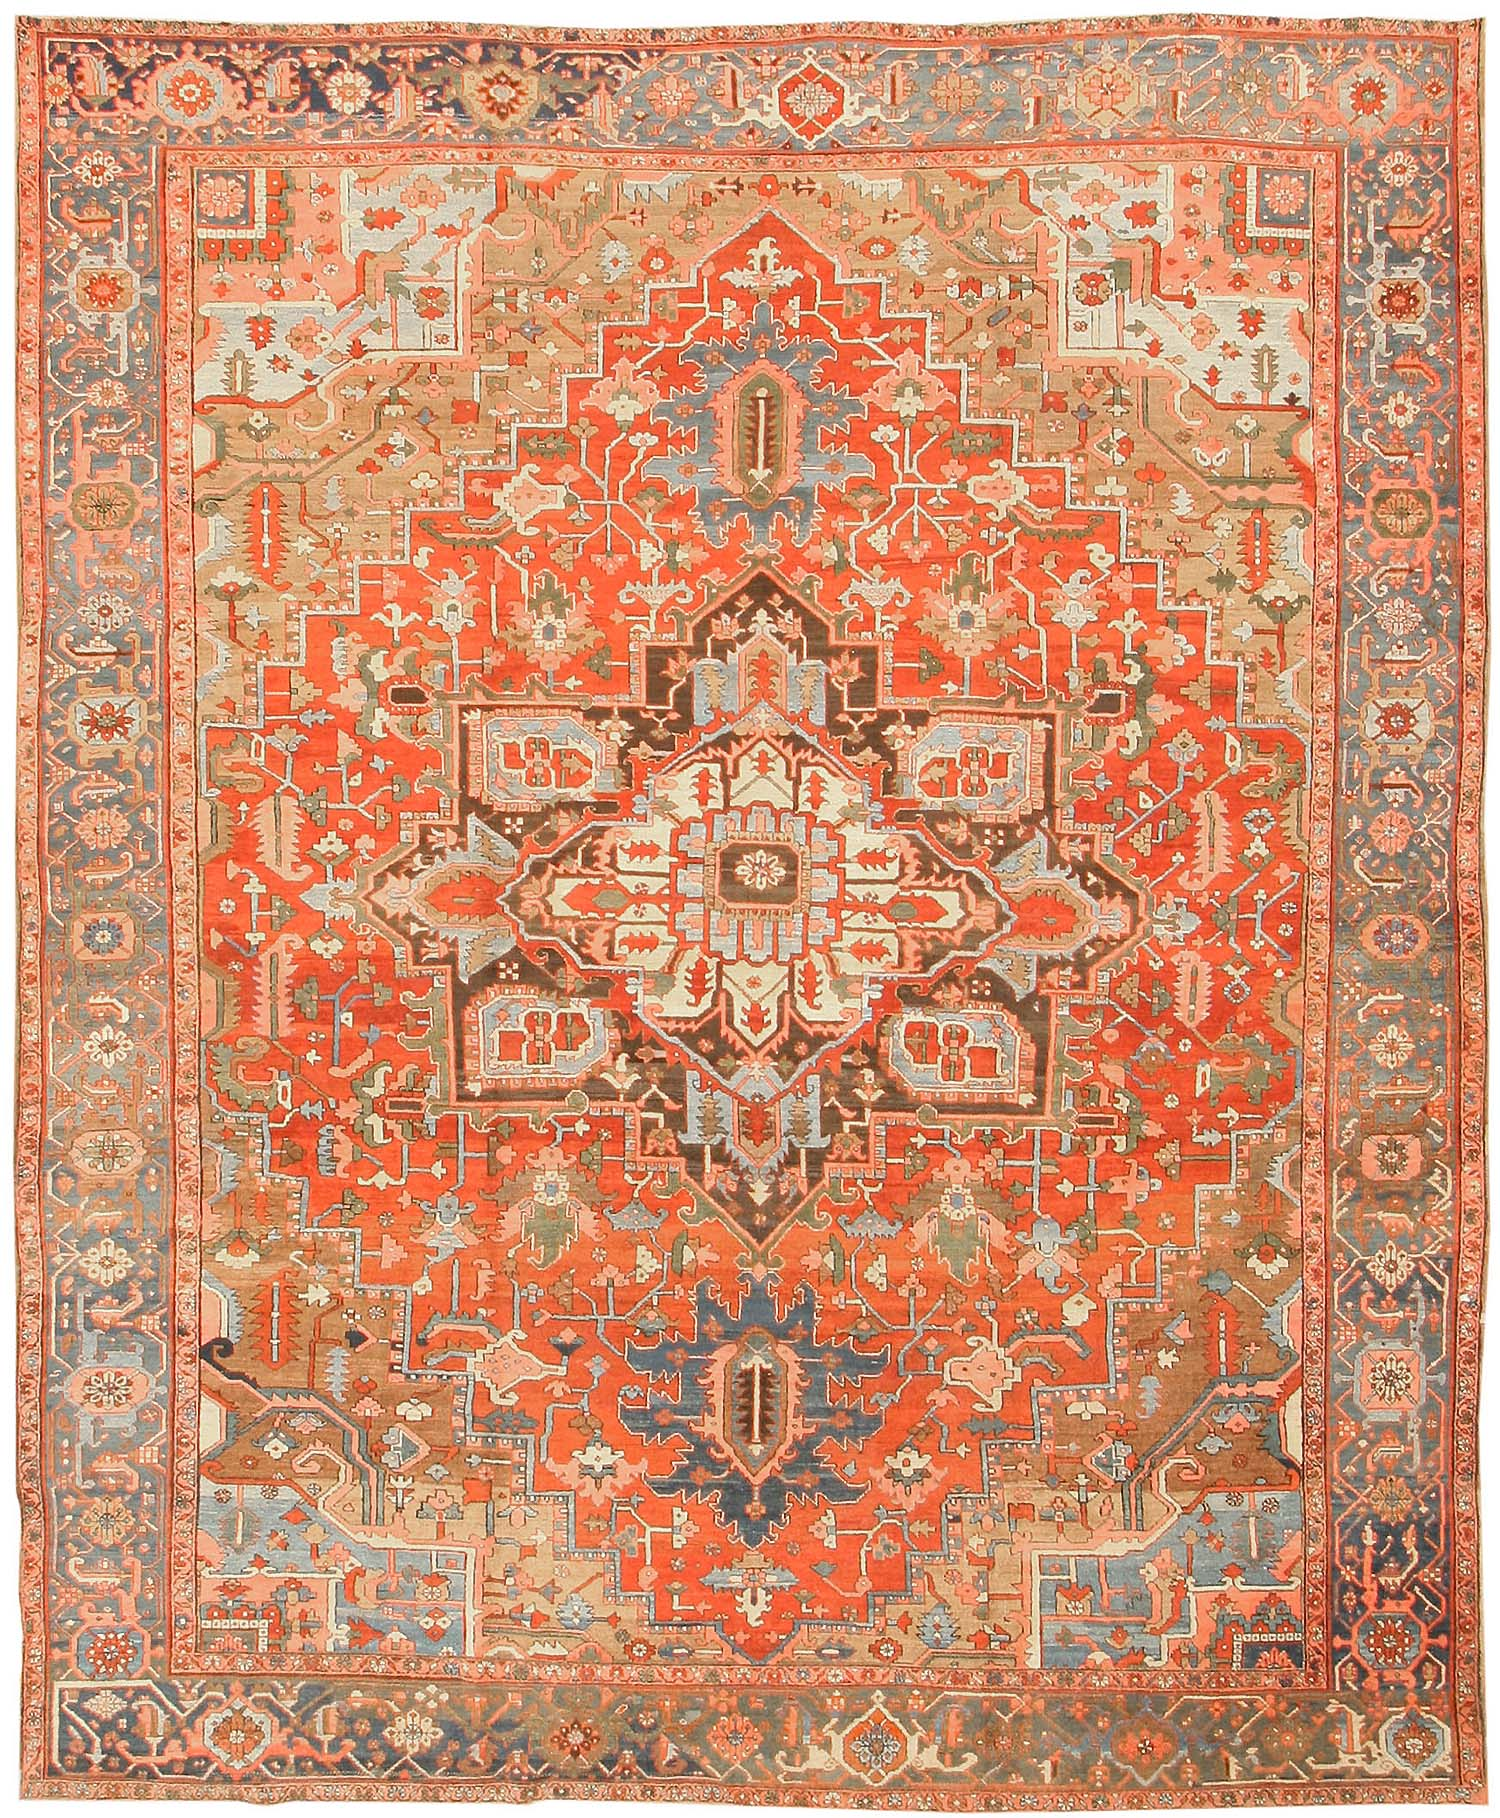 Chinese Rug Dealers: Antiques » Antique Rugs For